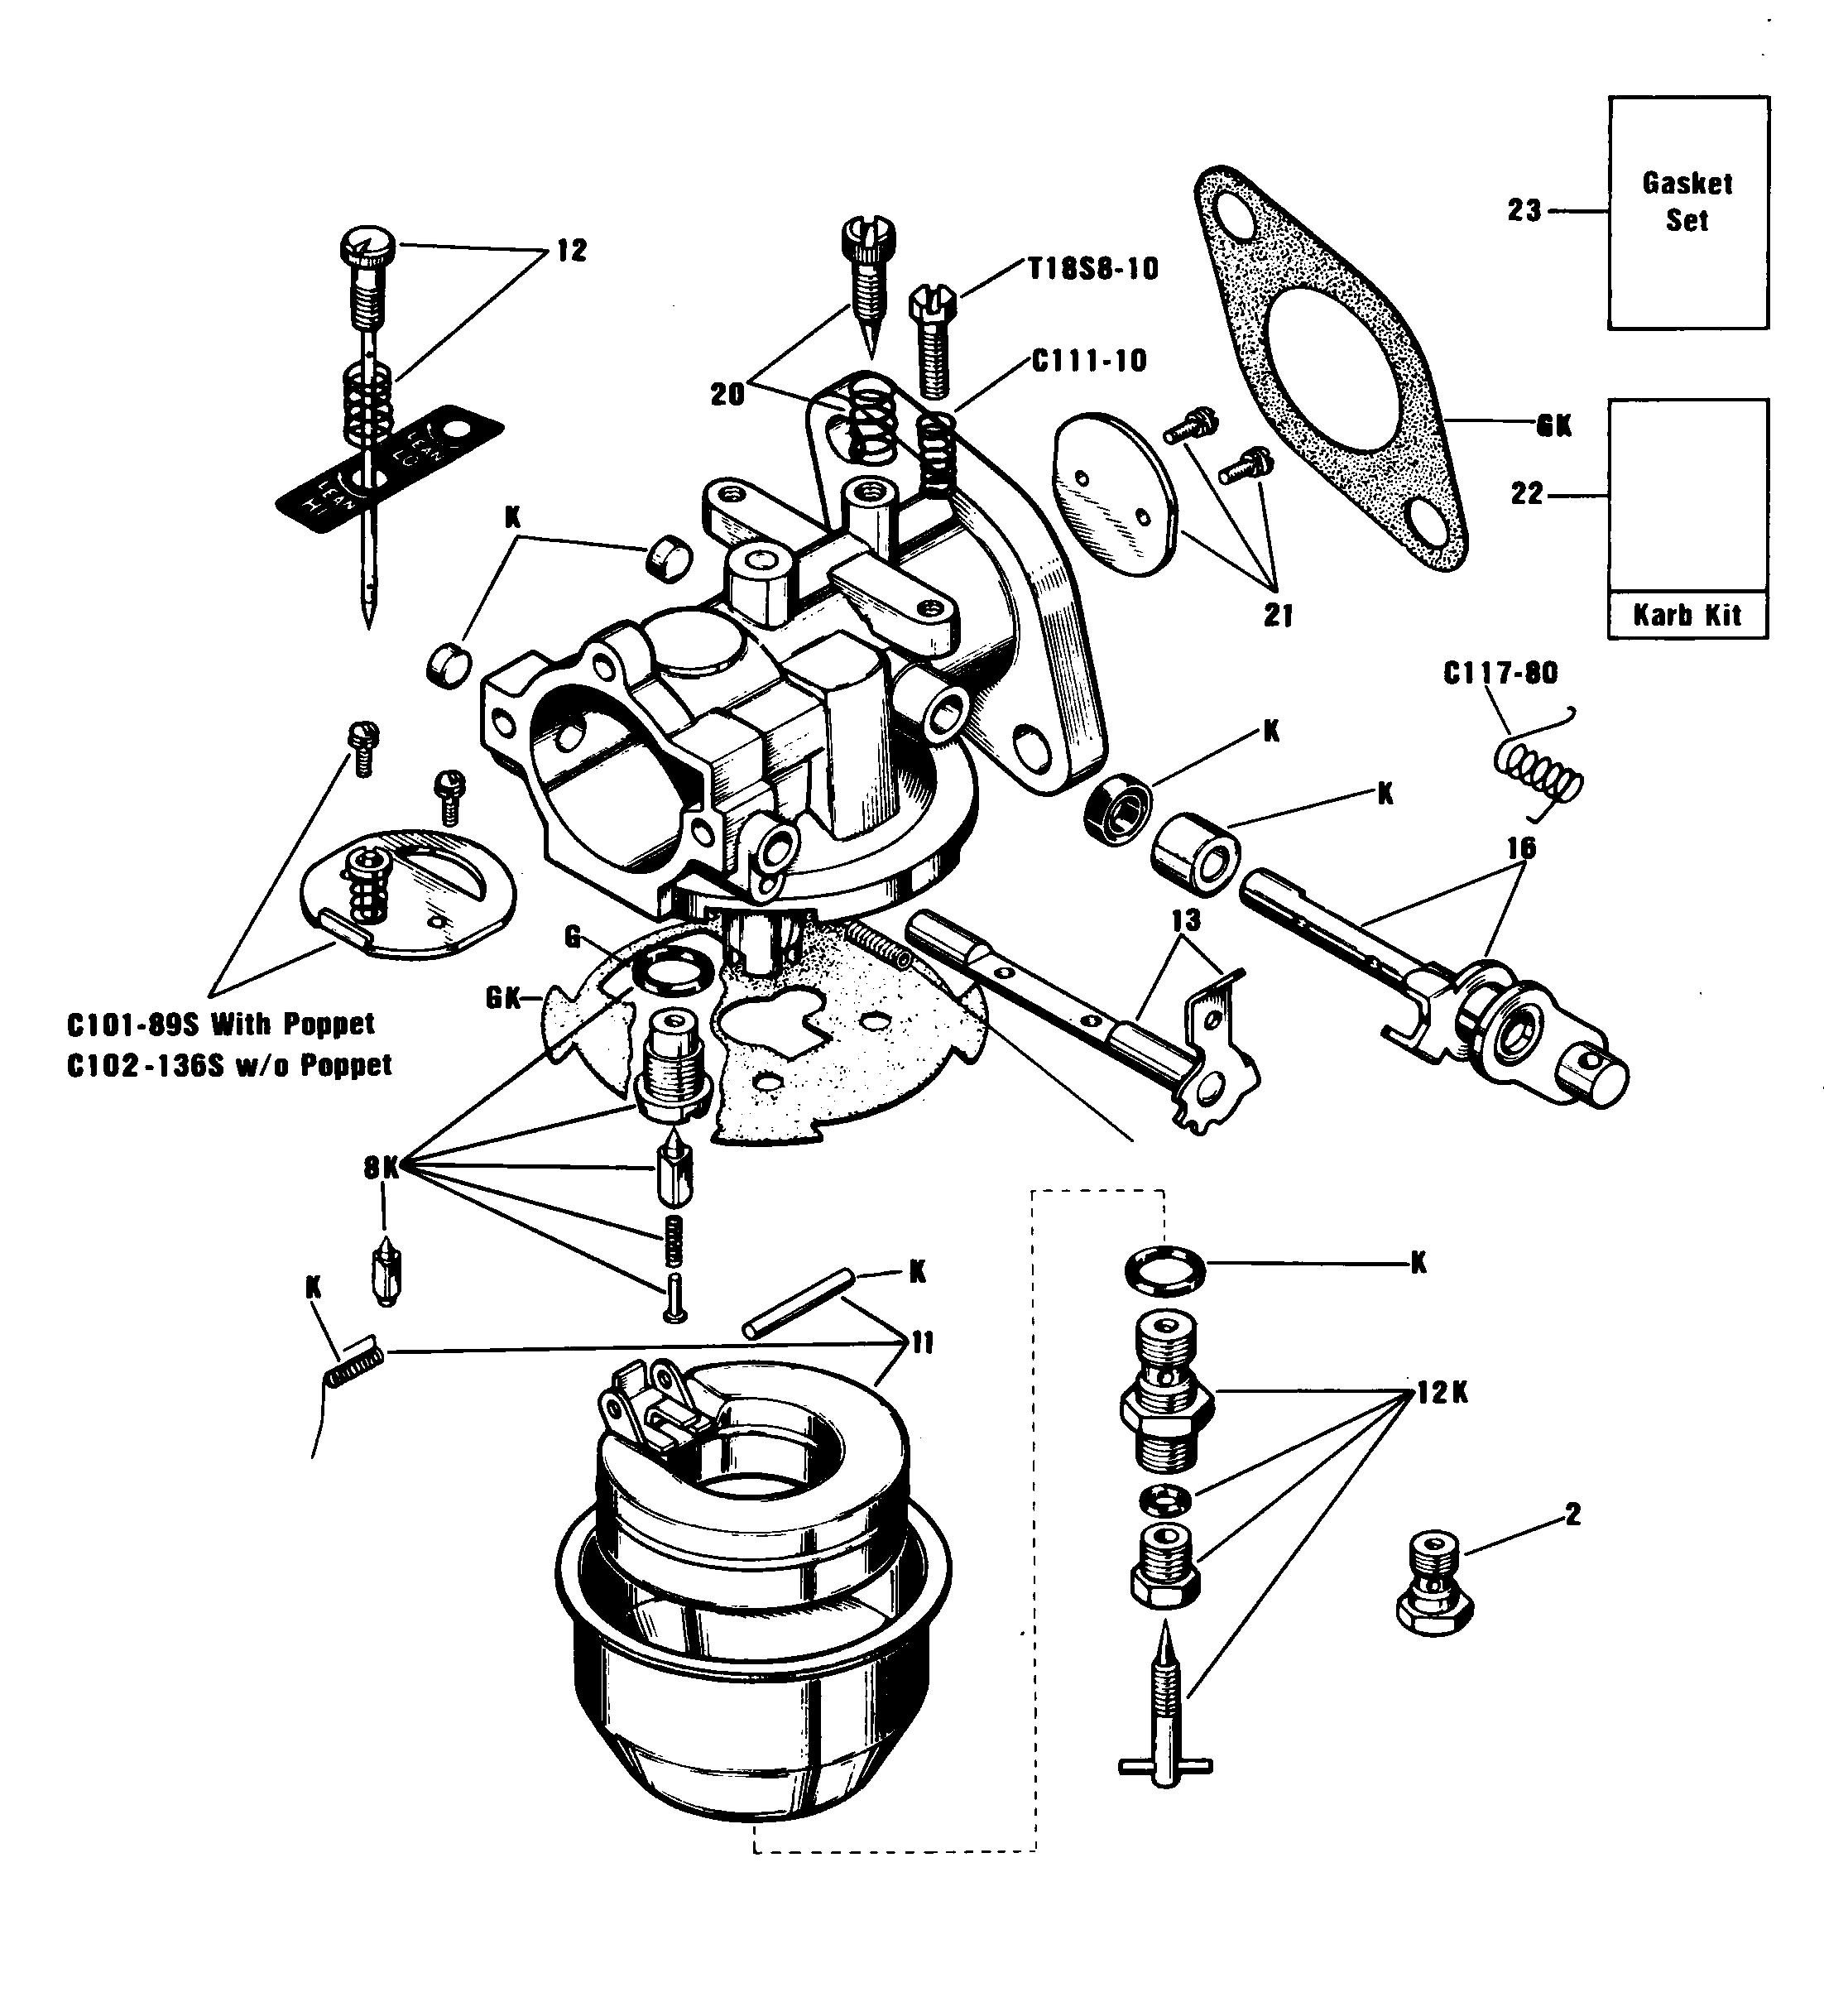 5500 Onan Engine Parts Breakdown ǹ� Downloaddescargar Com: Onan Generator Carburetor Diagram